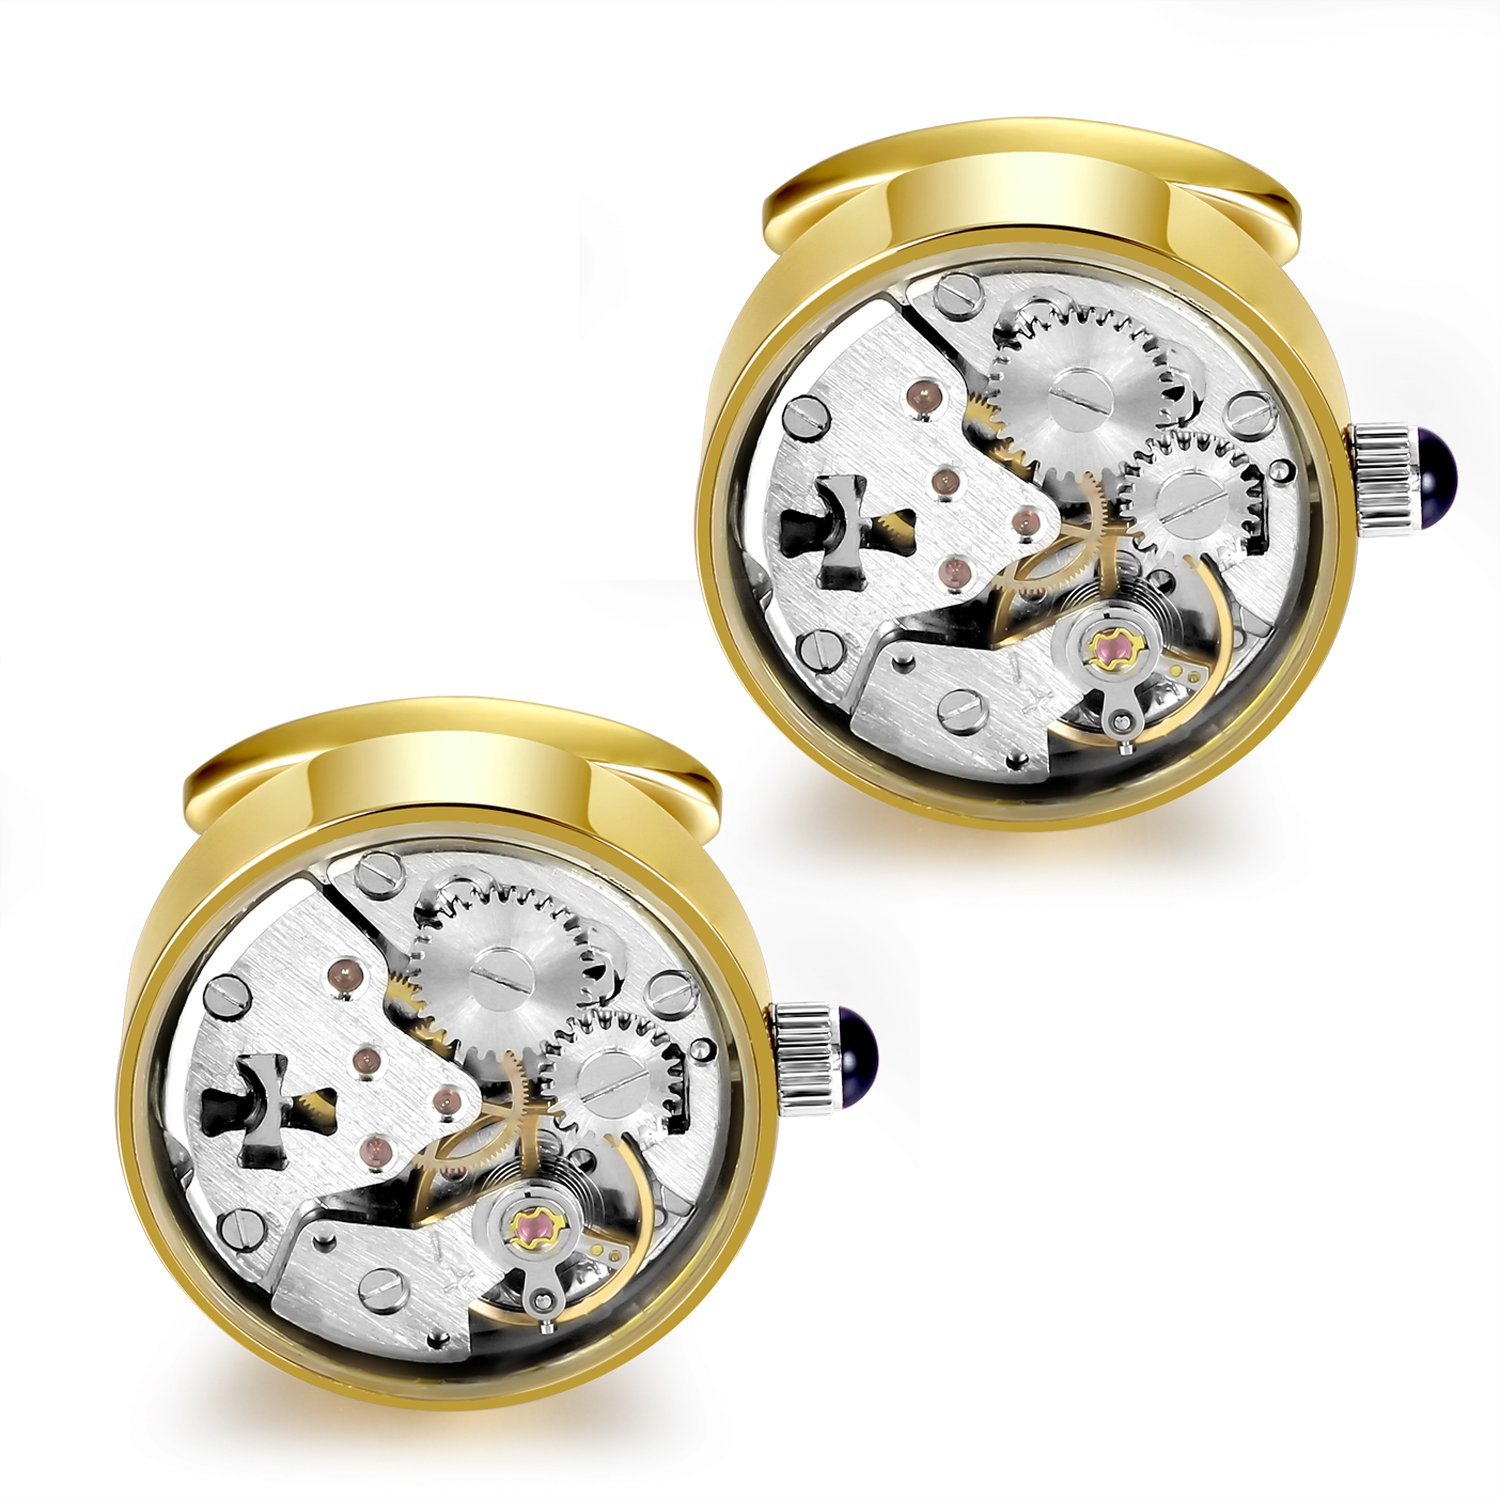 Dich Creat Unisex Stainless Steel Gold PVD Hollow Out Cross Wind-up Working Movement Cufflinks Covered With Glass